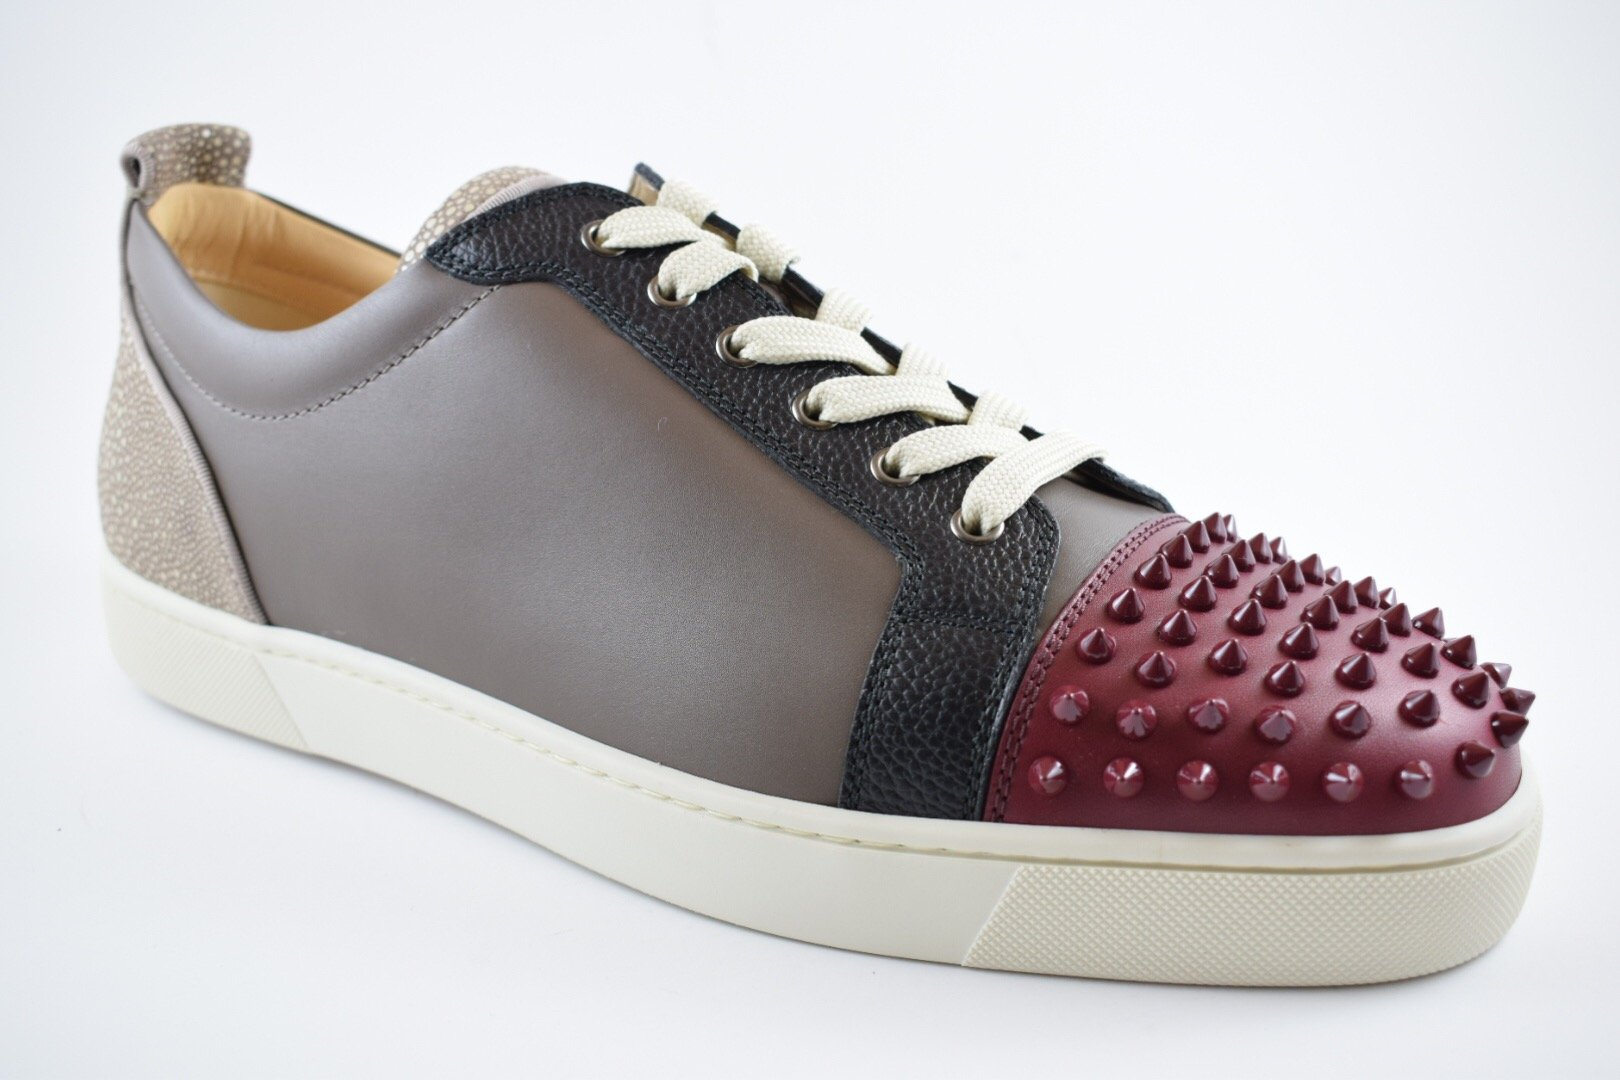 Louis Junior Spikes Flat Calf